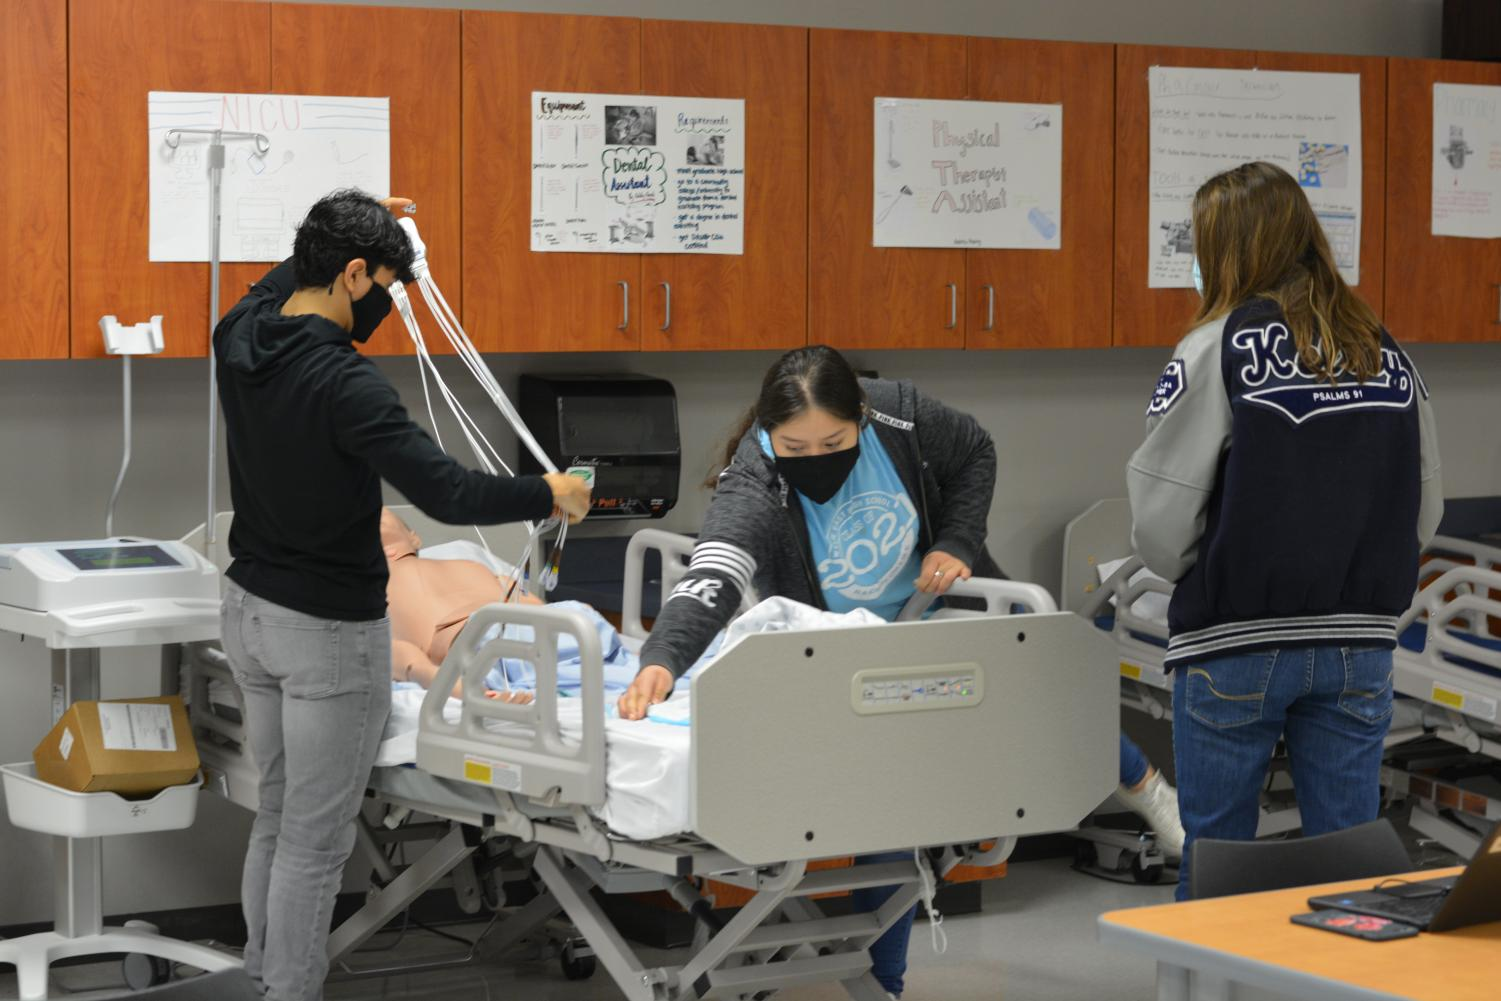 """Heartfelt Future // Practicing their lead placement for their EKG, senior Nancy Gomez, and other students prepare for their health care careers. """"I am really outgoing with people so working with different patients and people is interesting to me. I am planning to be a sonographer or an ultrasound tech,"""" Gomez said."""